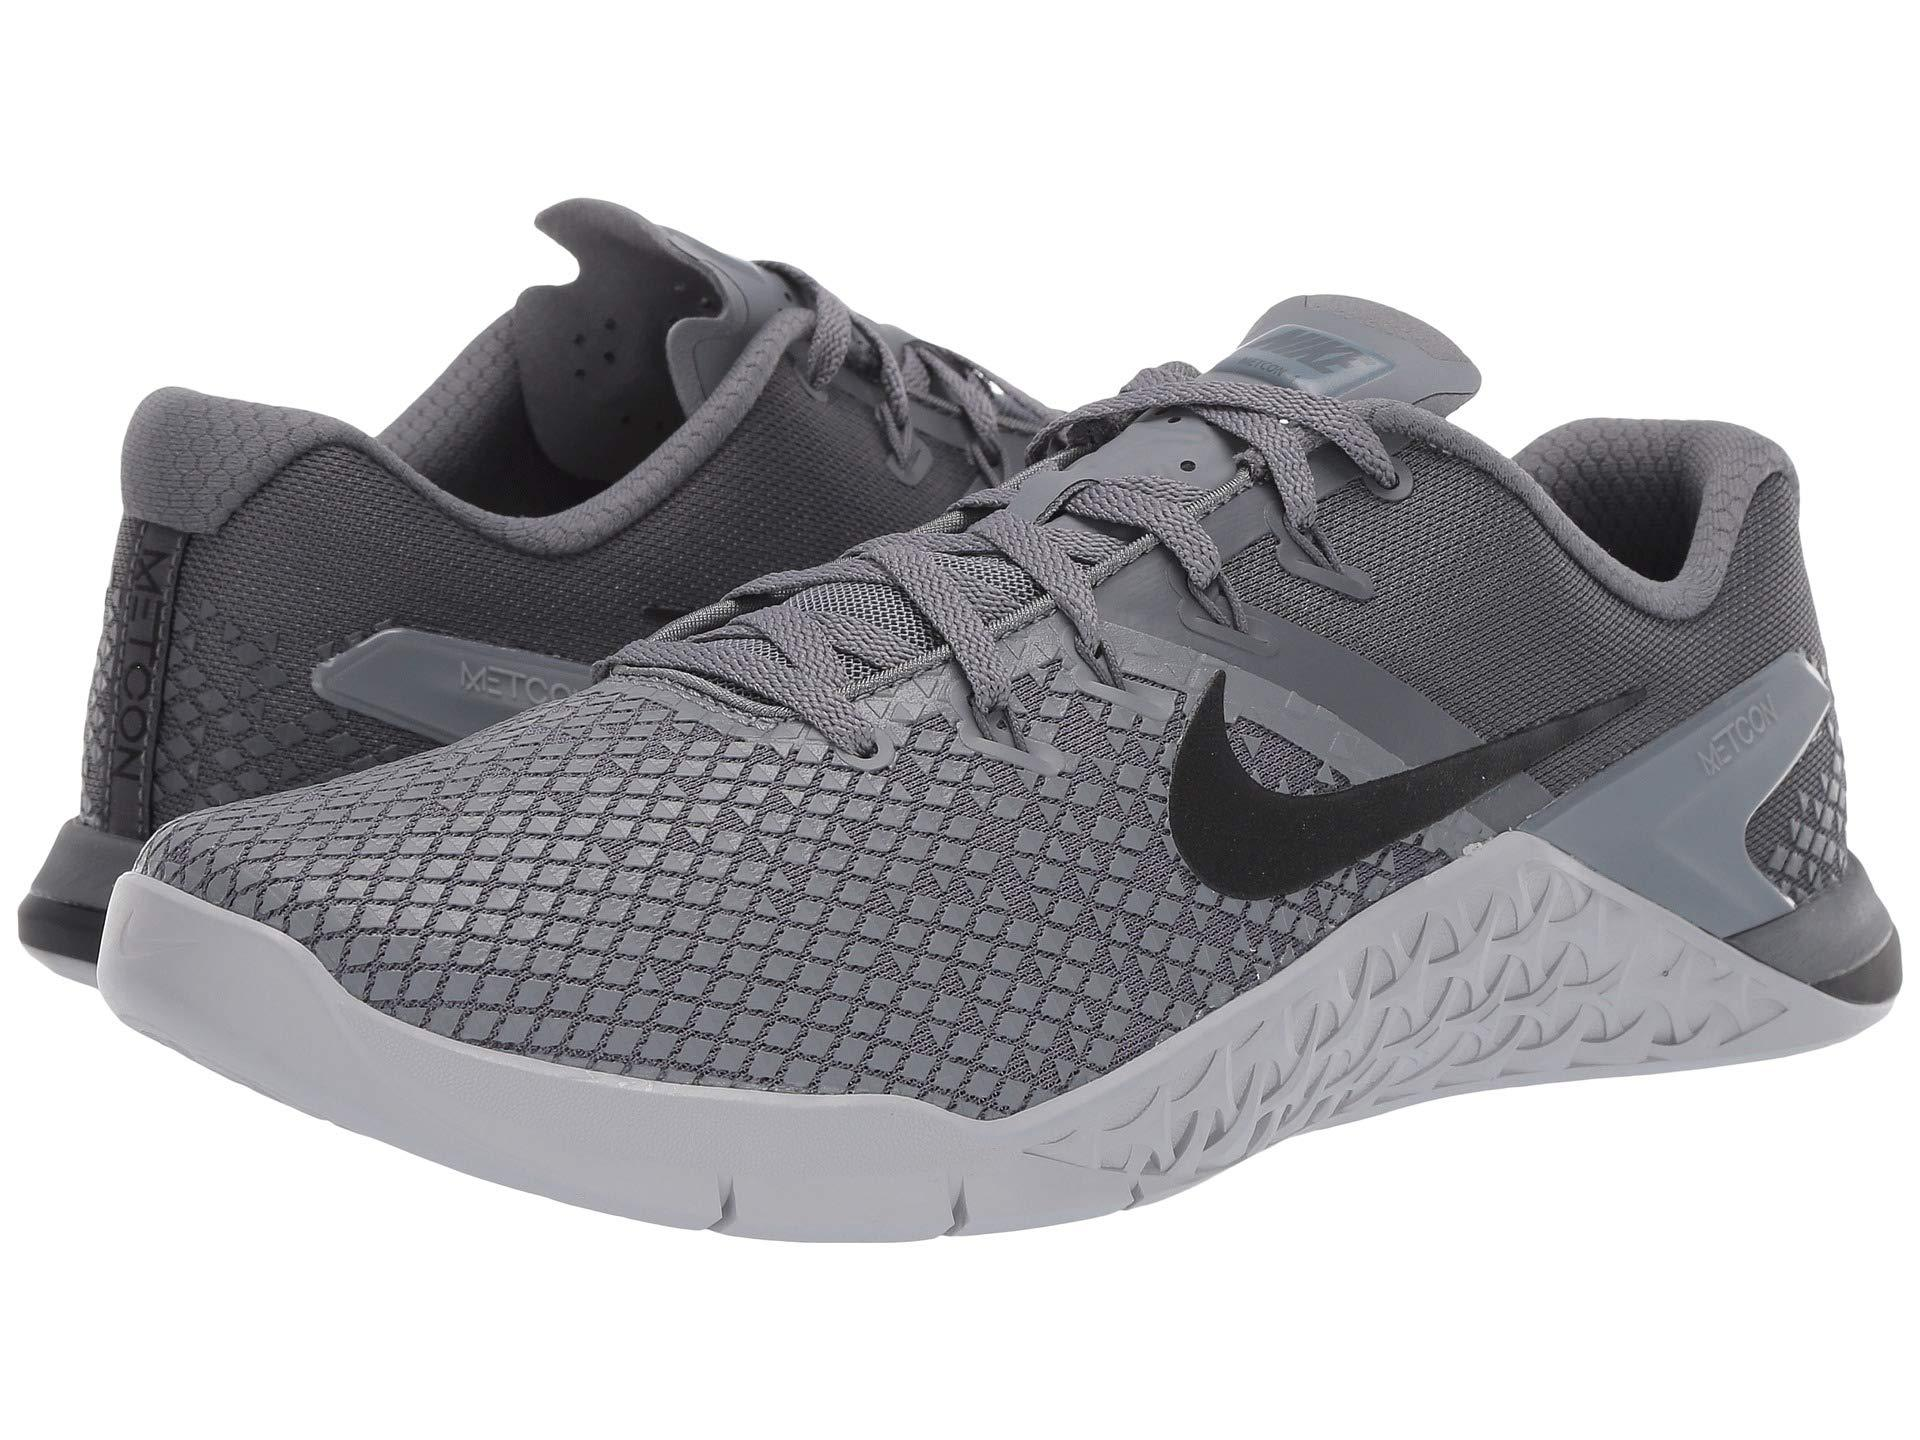 the best attitude fe2d0 c6b80 Nike Metcon 4 Xd (black wolf Grey anthracite white) Men s Cross ...